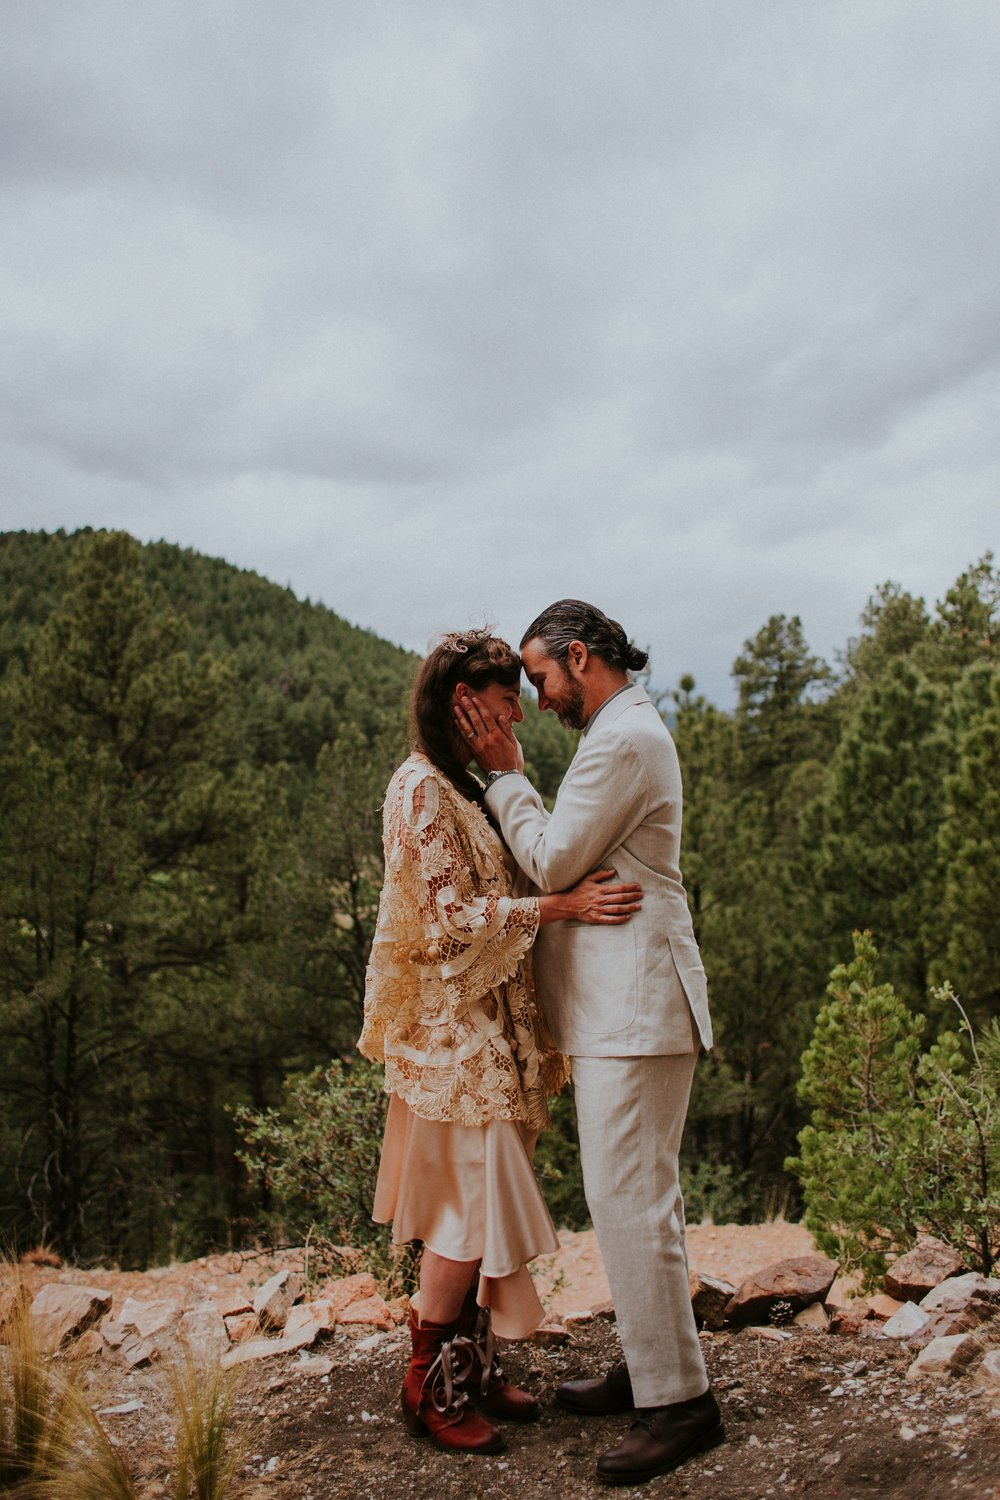 0000000000000000000062_Dwan-Light-Sanctuary-Wedding-Photos_Johnson-Mumford_Rainbow-Wedding_Montezuma-New-Mexico-Wedding-Photography-58.jpg